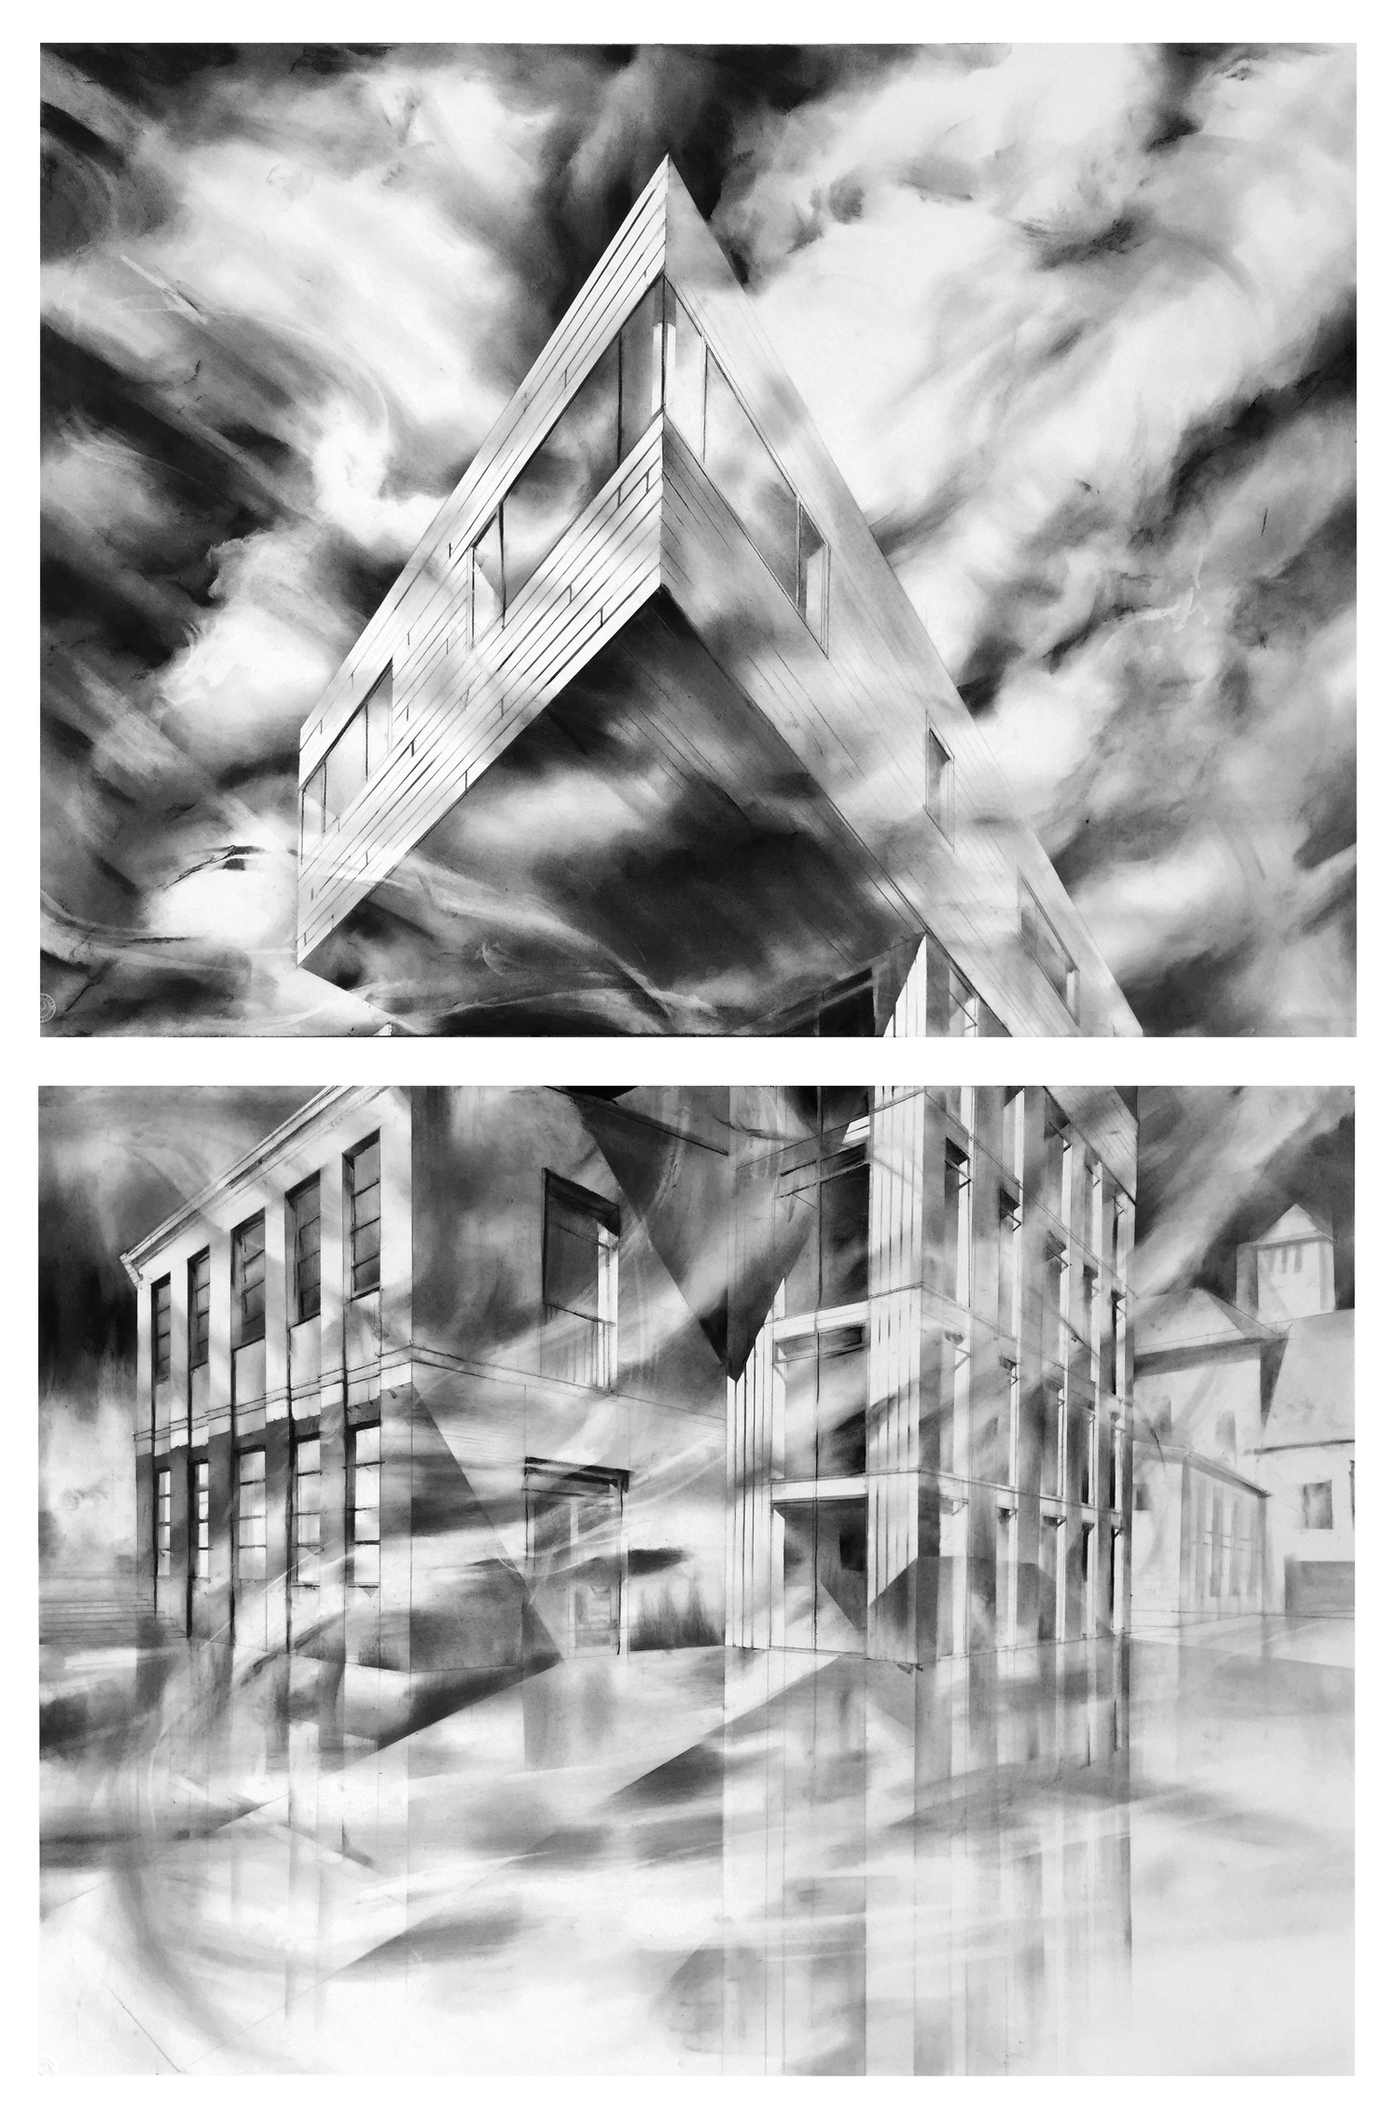 recent drawings and openings drawing for 2017 exhibit at the Architektur Galerie Berlin, Germany